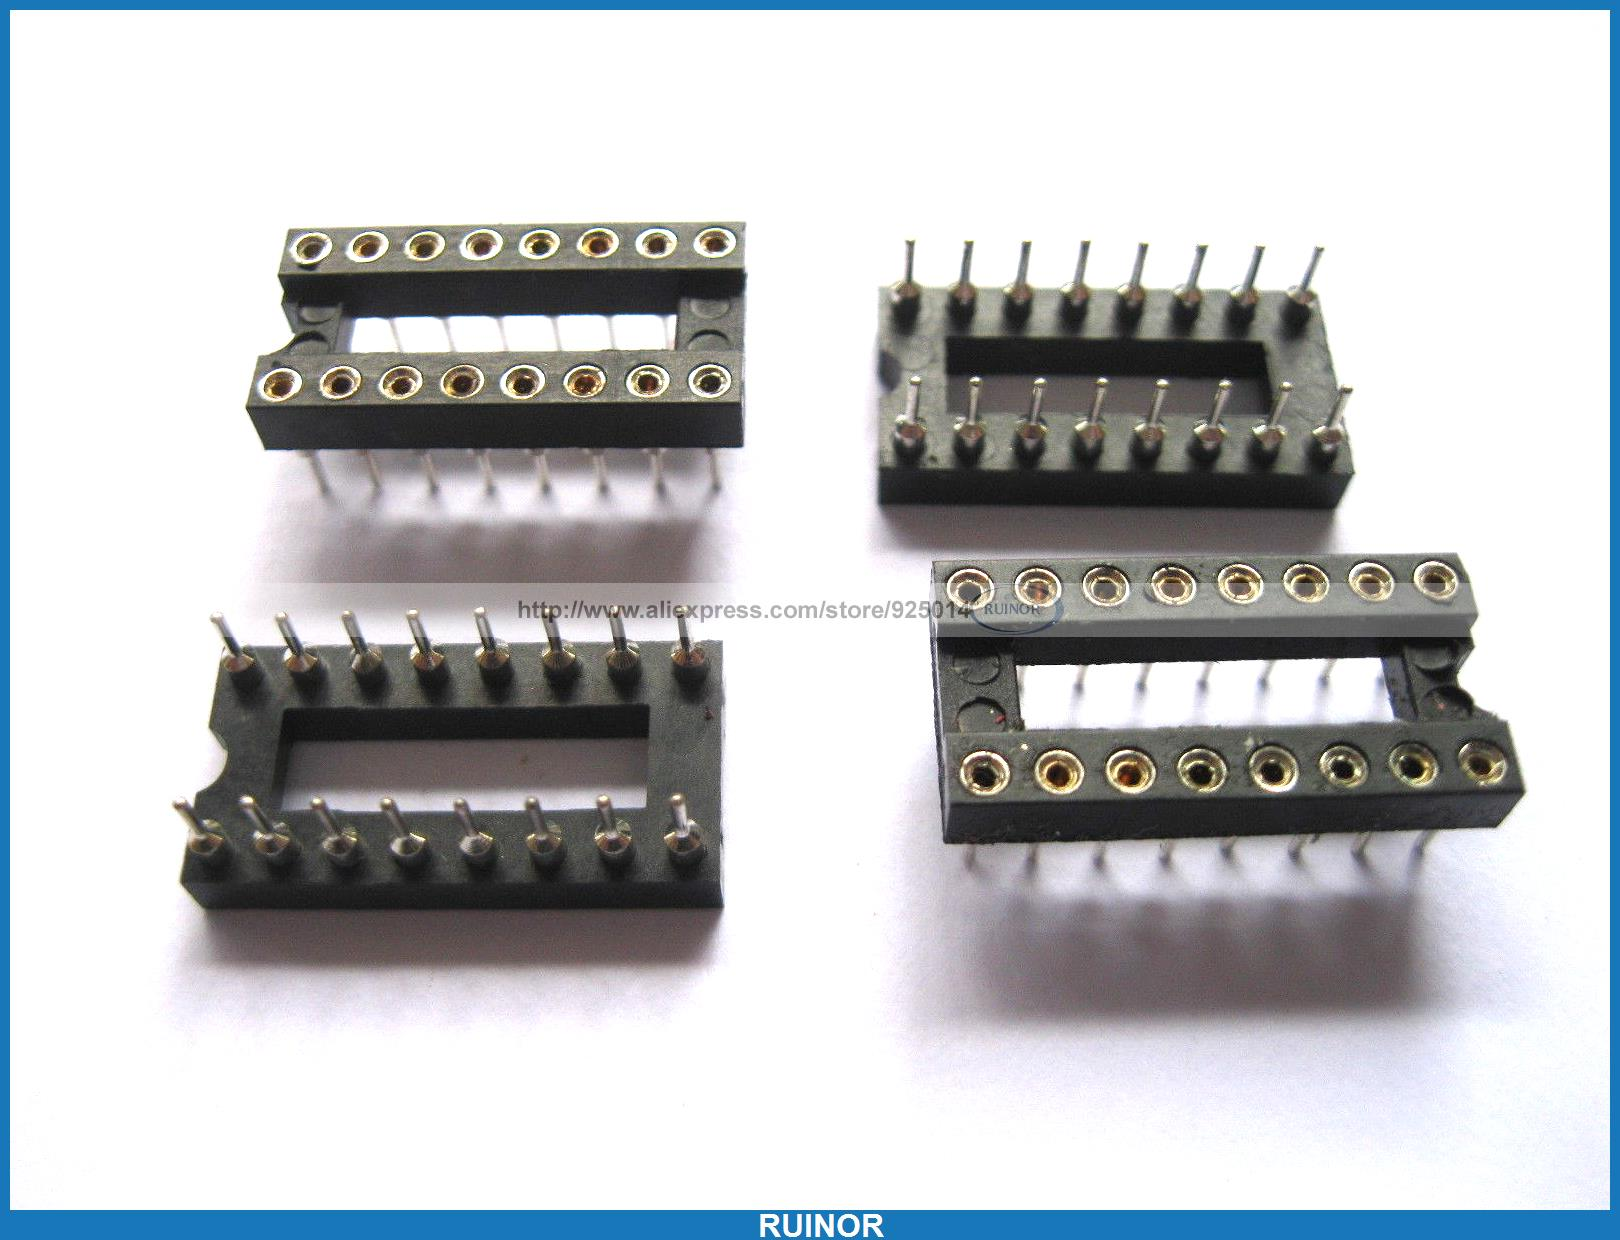 90 Pcs IC Socket Adapter 16 Pin Round DIP High Quality <br><br>Aliexpress